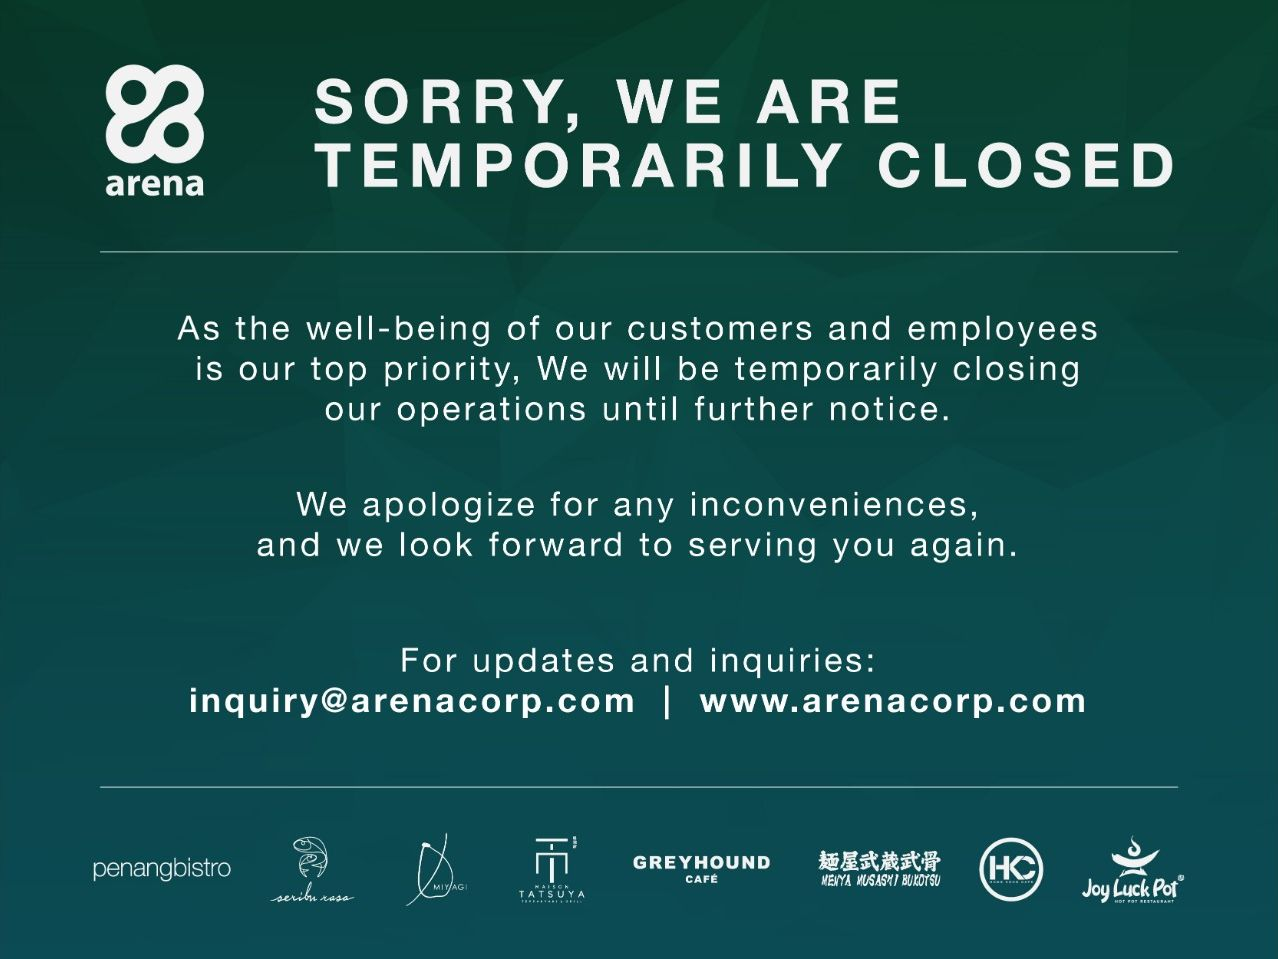 SORRY, WE ARE TEMPORARILY CLOSED! image